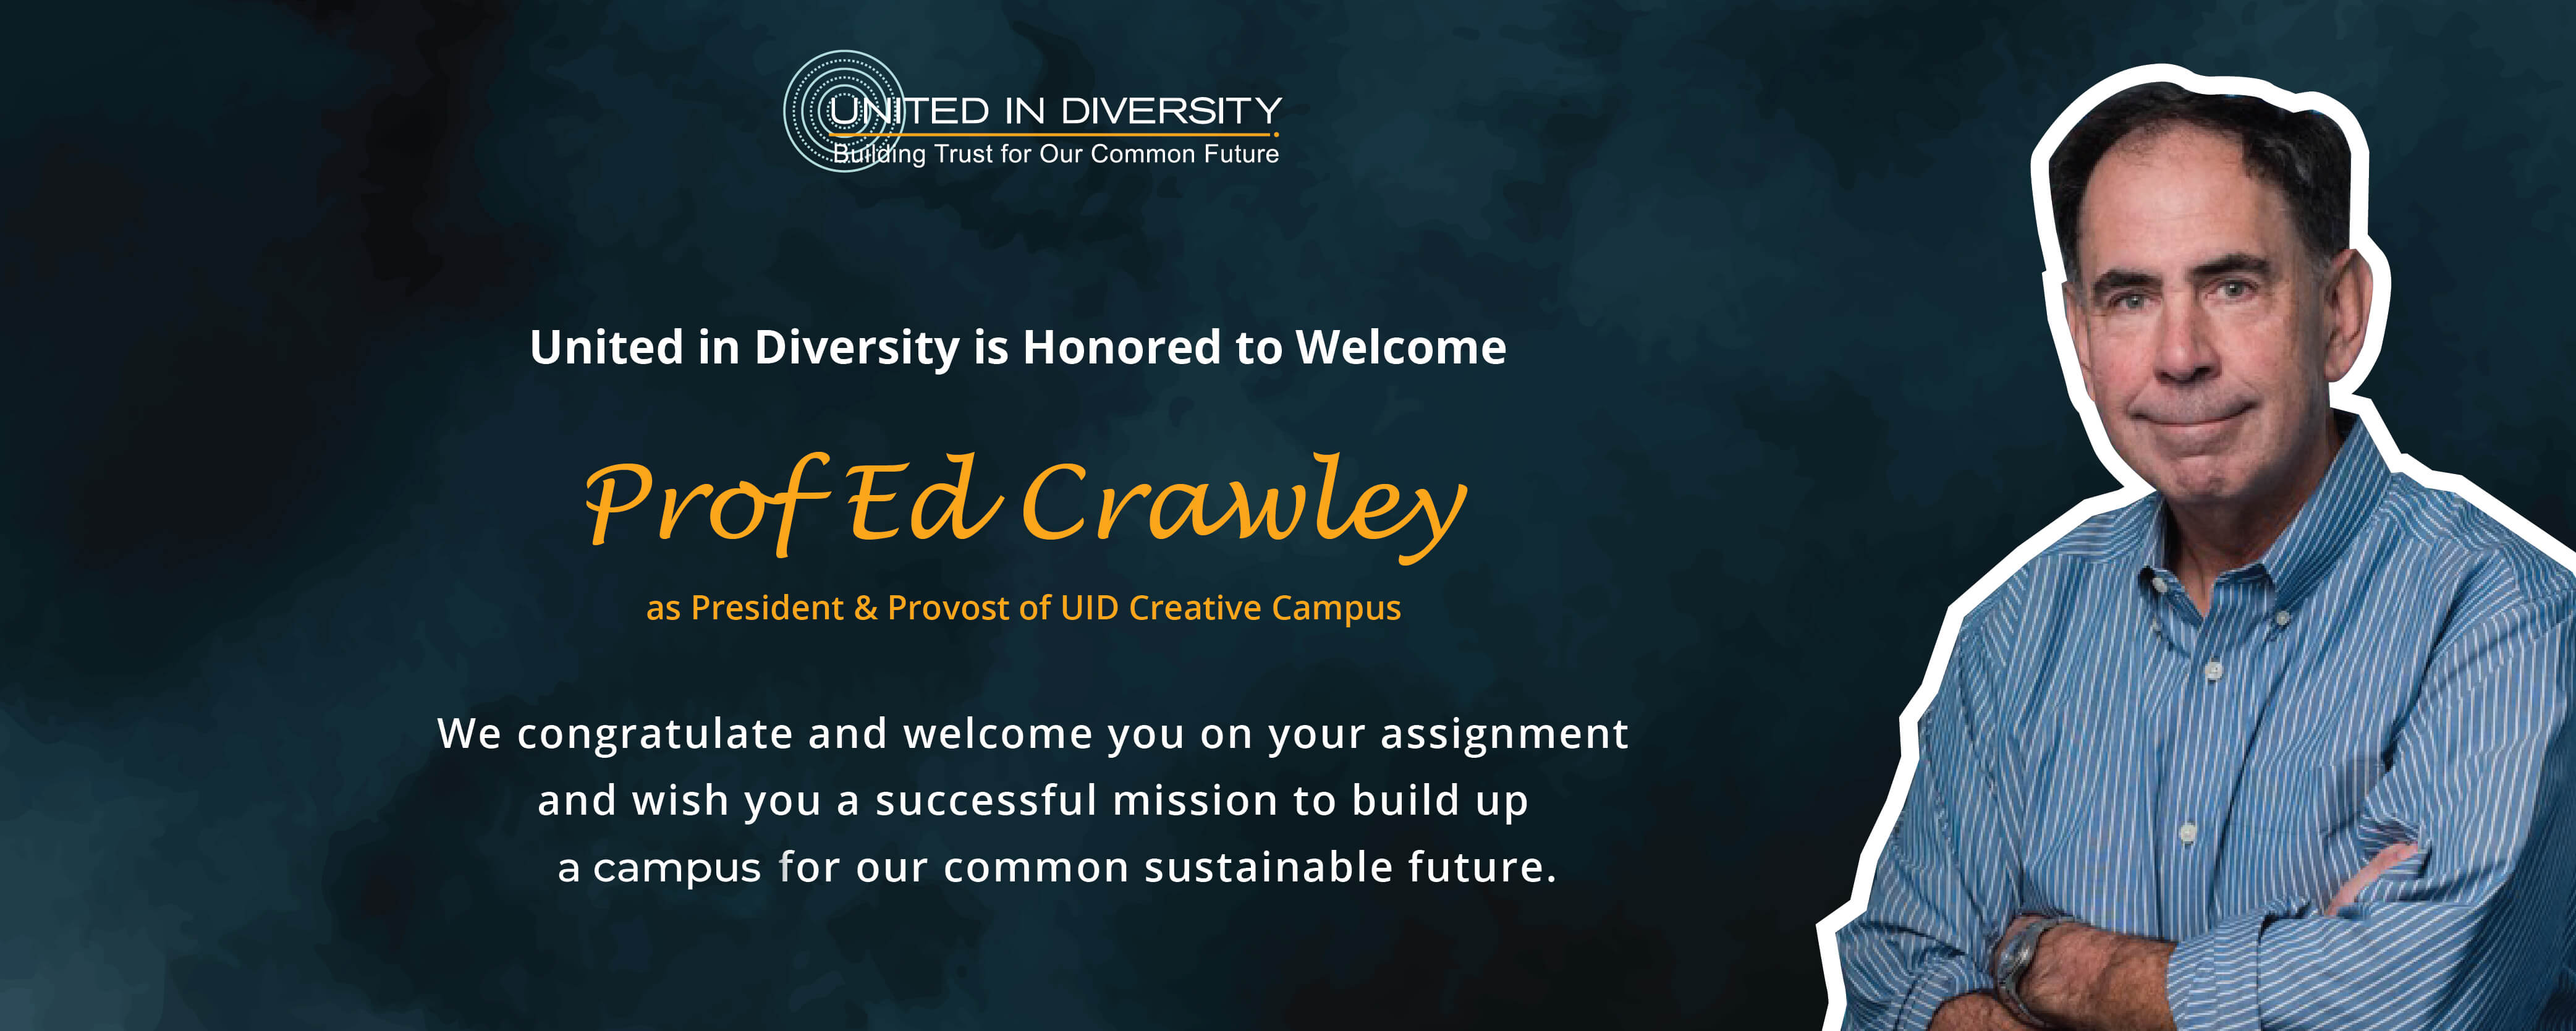 United in Diversity is honored to welcome Prof Ed Crawley  as President & Provost of UID Creative Campus